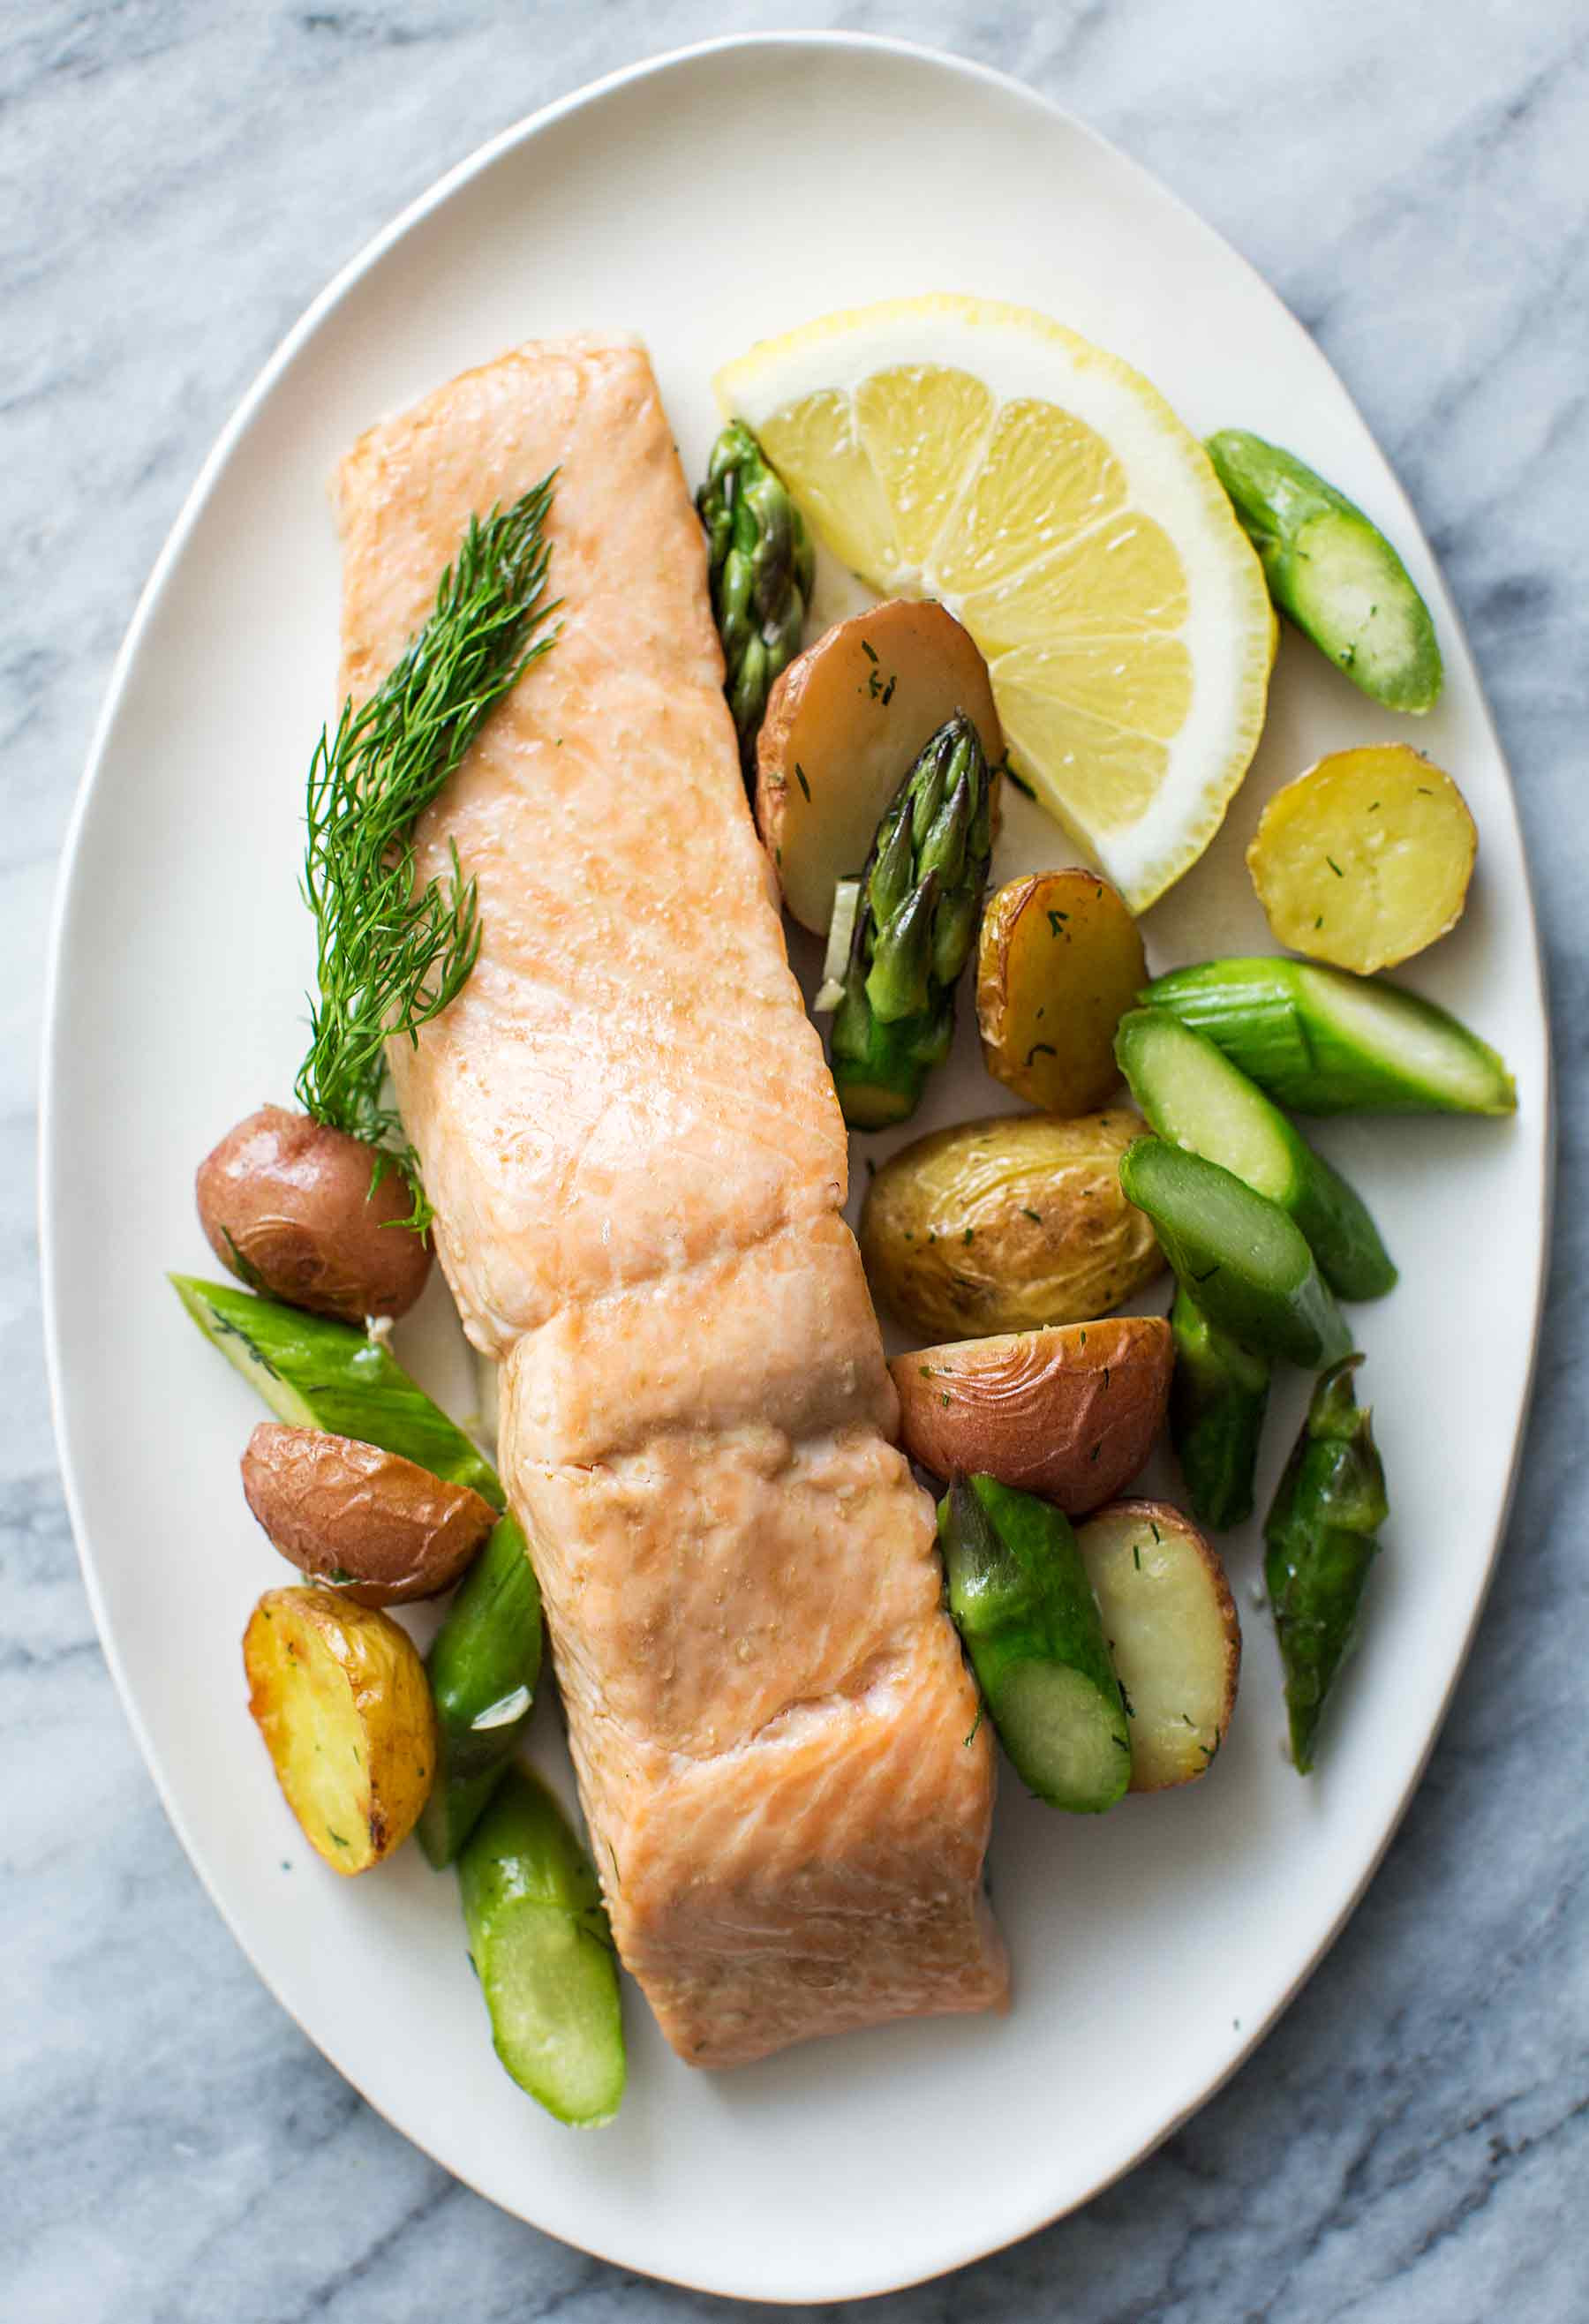 Asparagus And Salmon  Oven Roasted Salmon Asparagus and New Potatoes Recipe